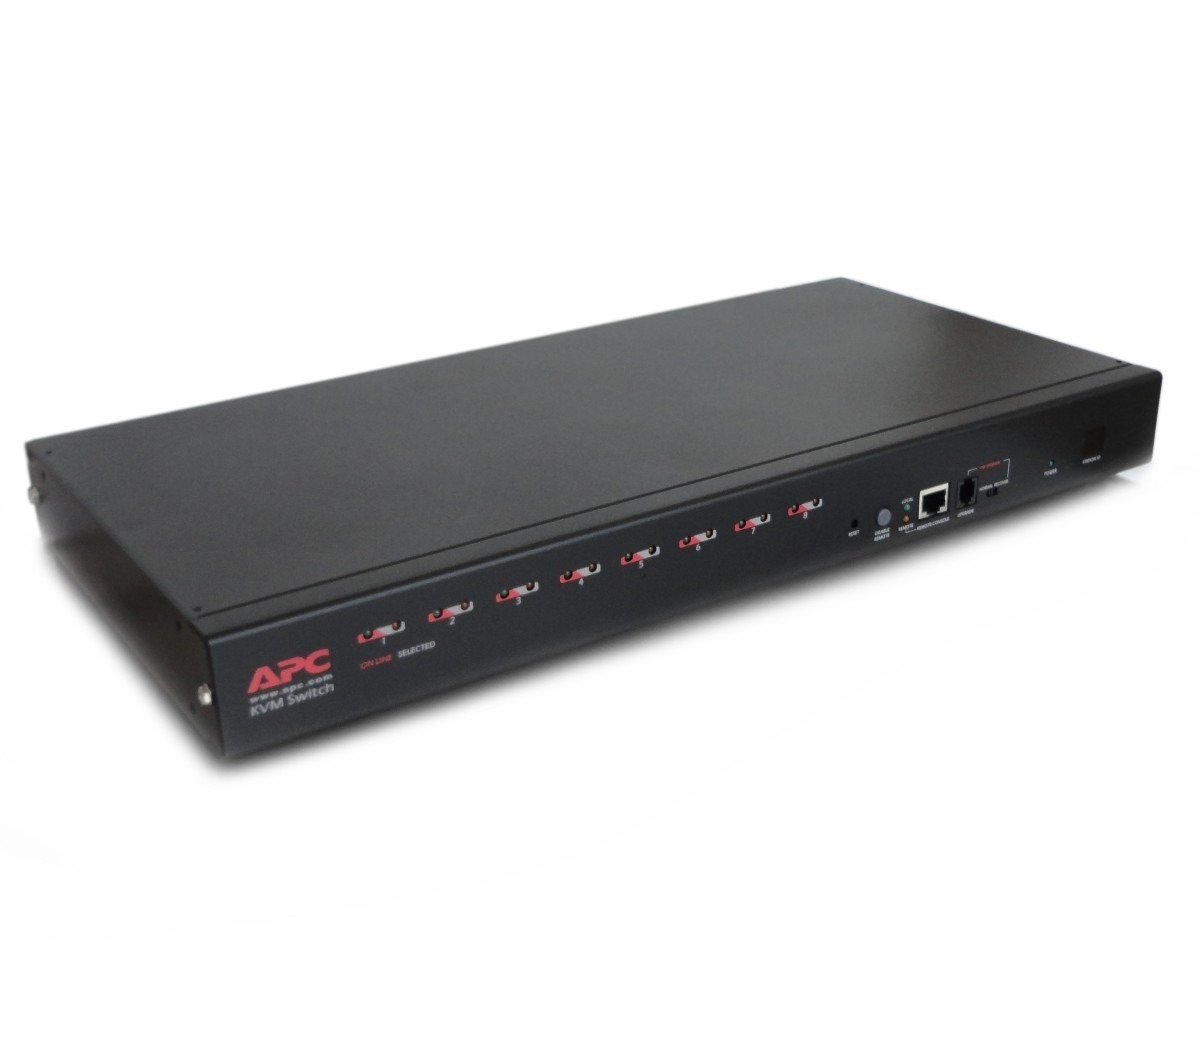 APC AP5201 8-Port Multi-Platform Analog KVM Switch